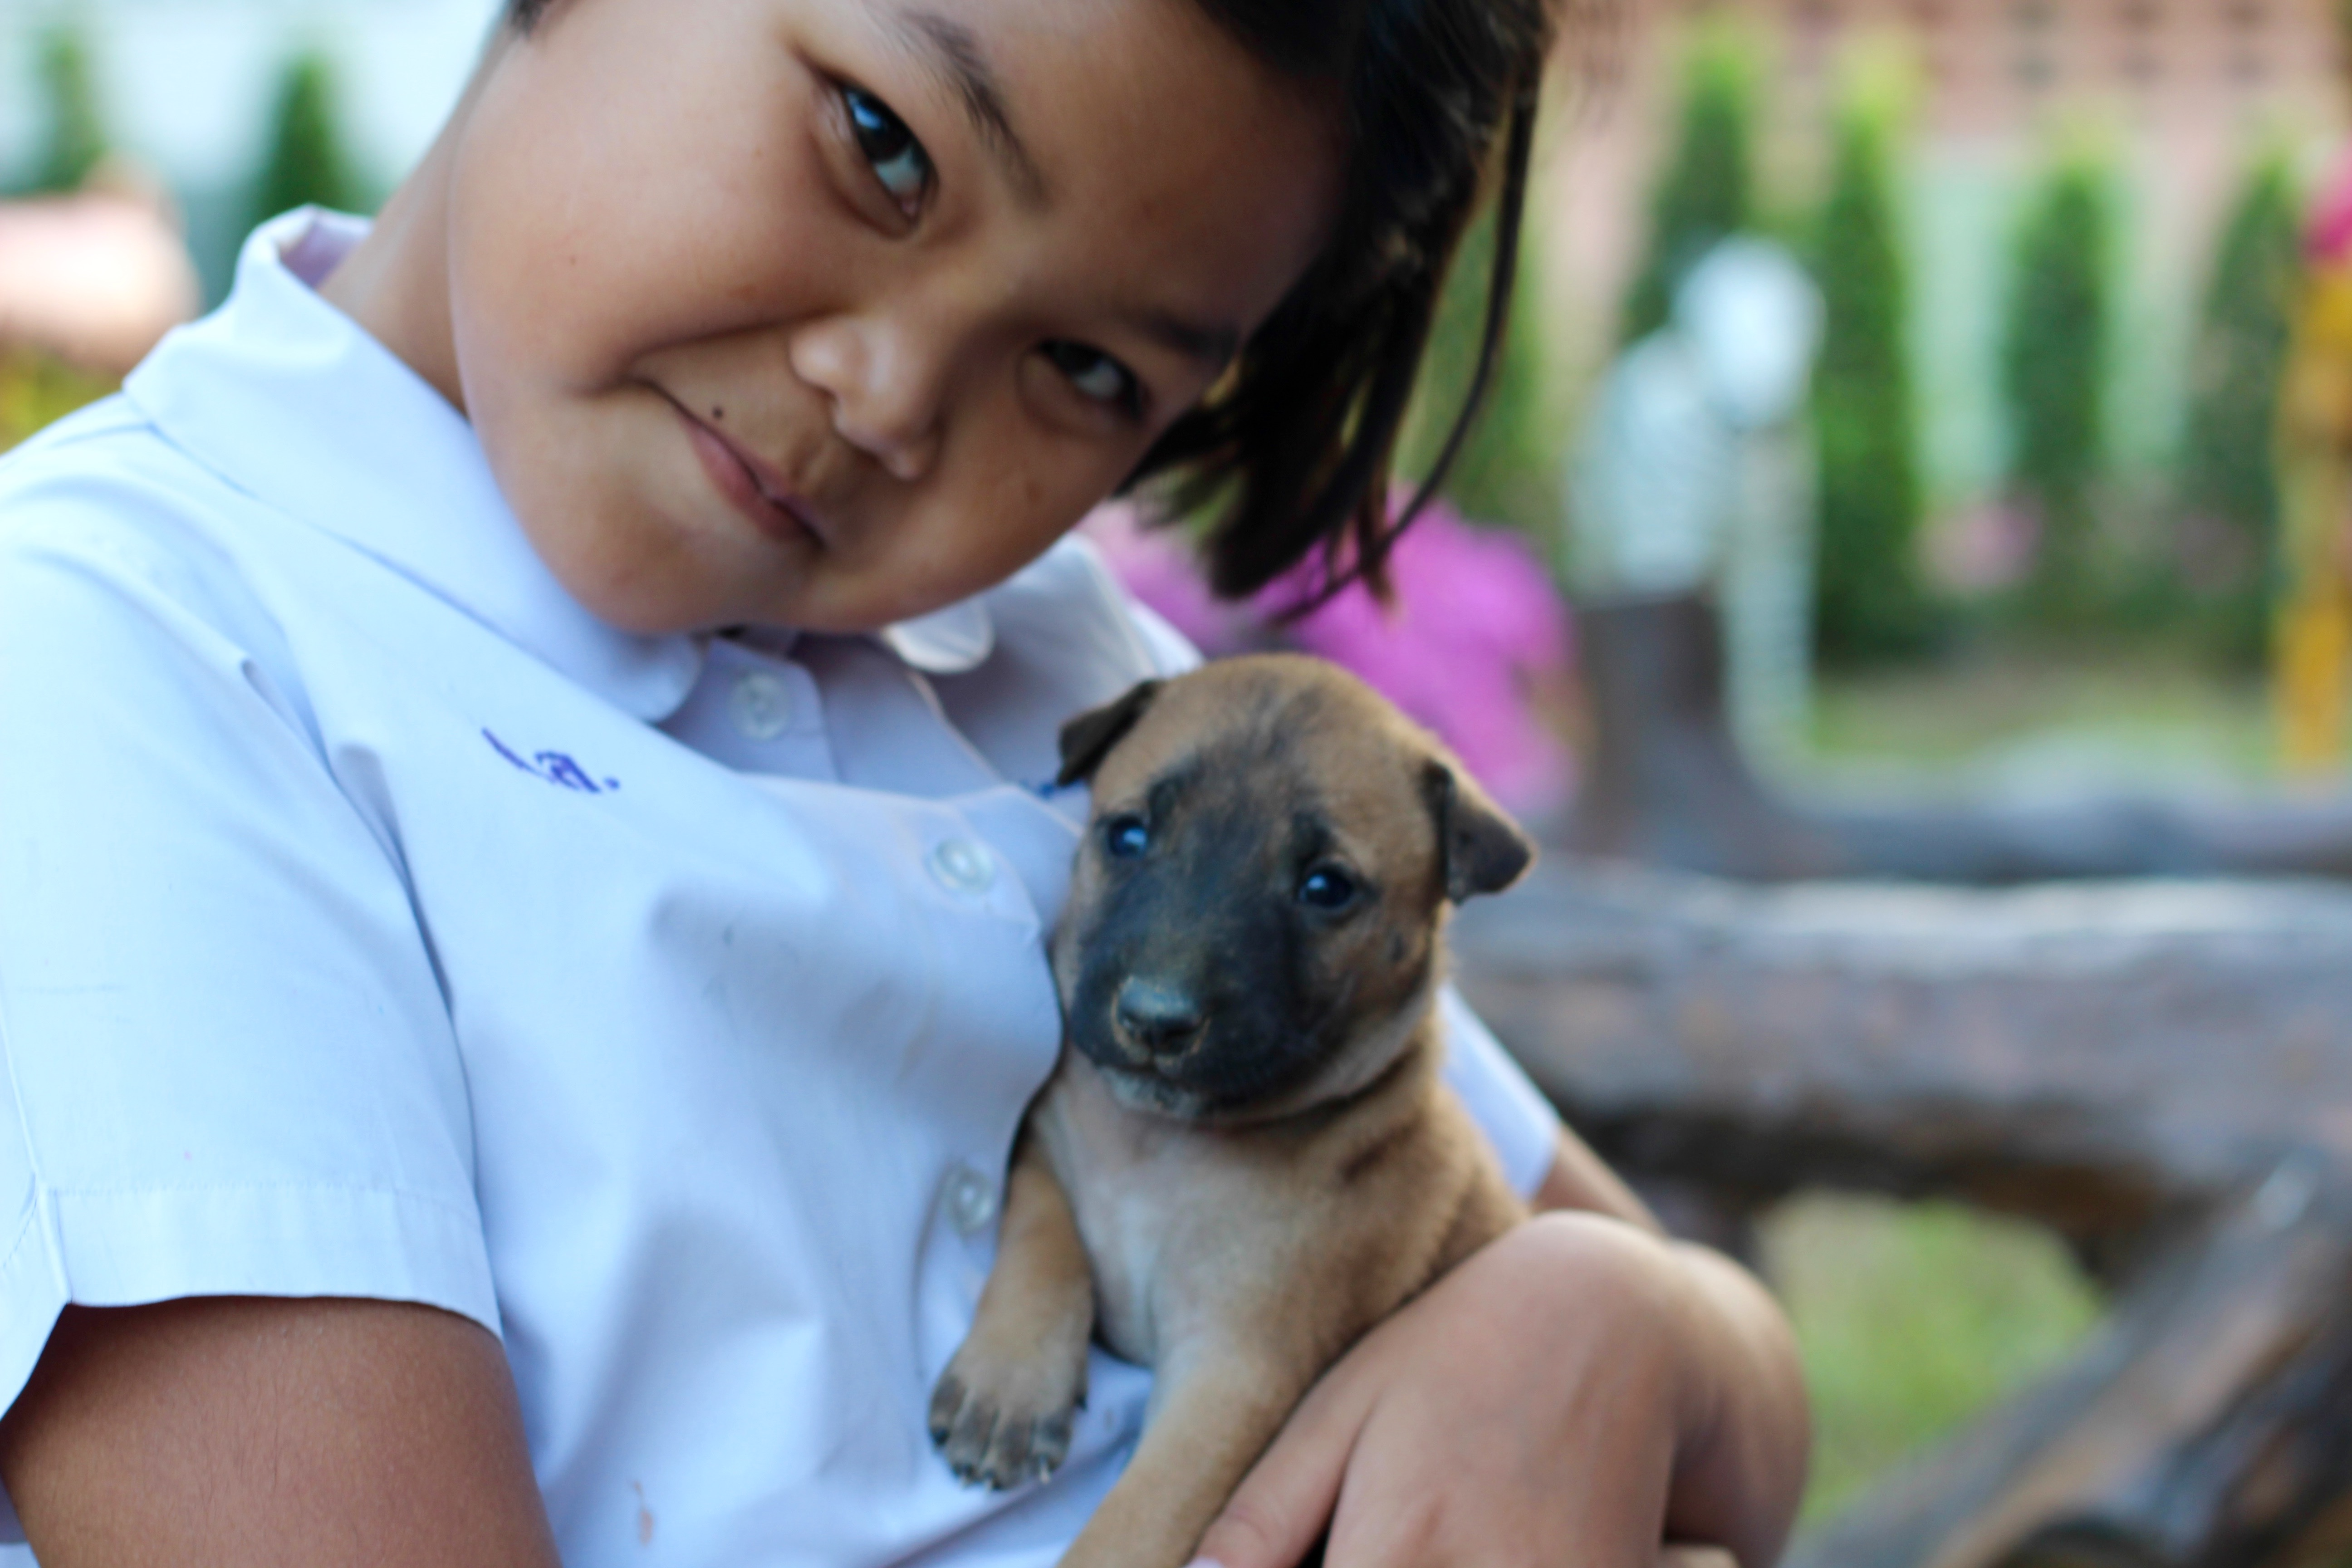 i-to-i student at school holding a puppy found on the school grounds in Thailand